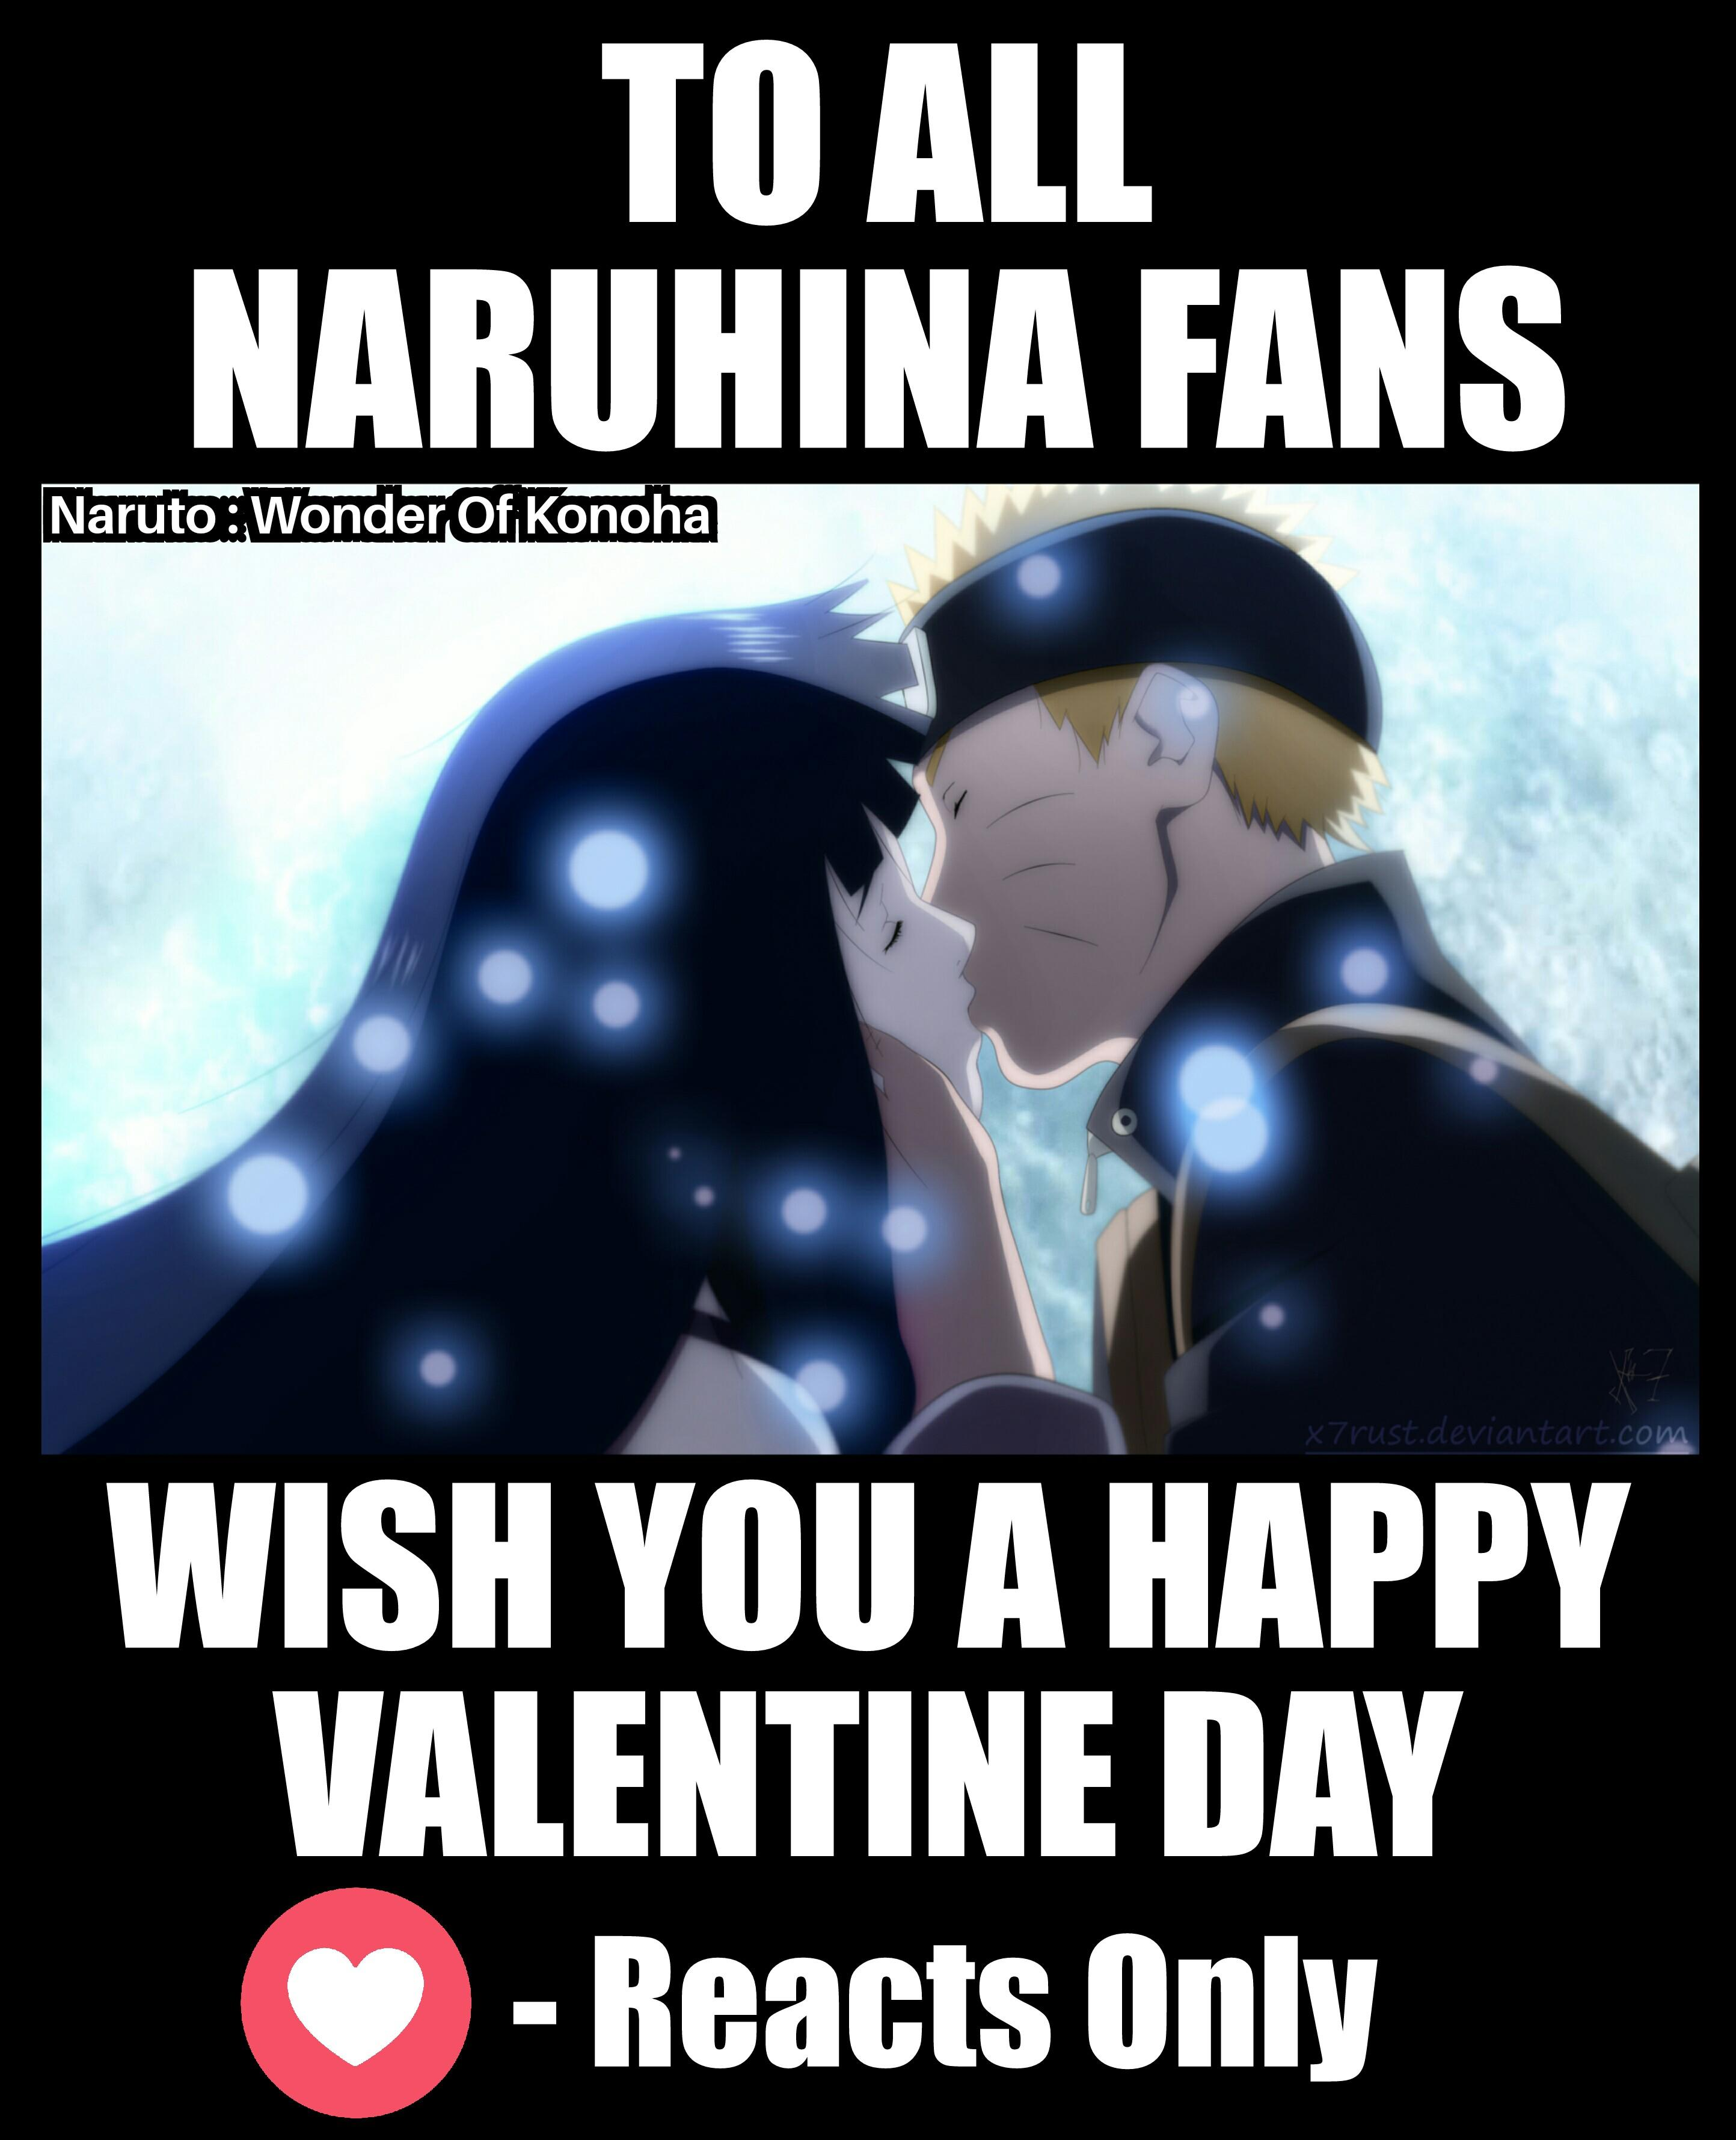 Valentine Day NaruHina Naruto Know Your Meme